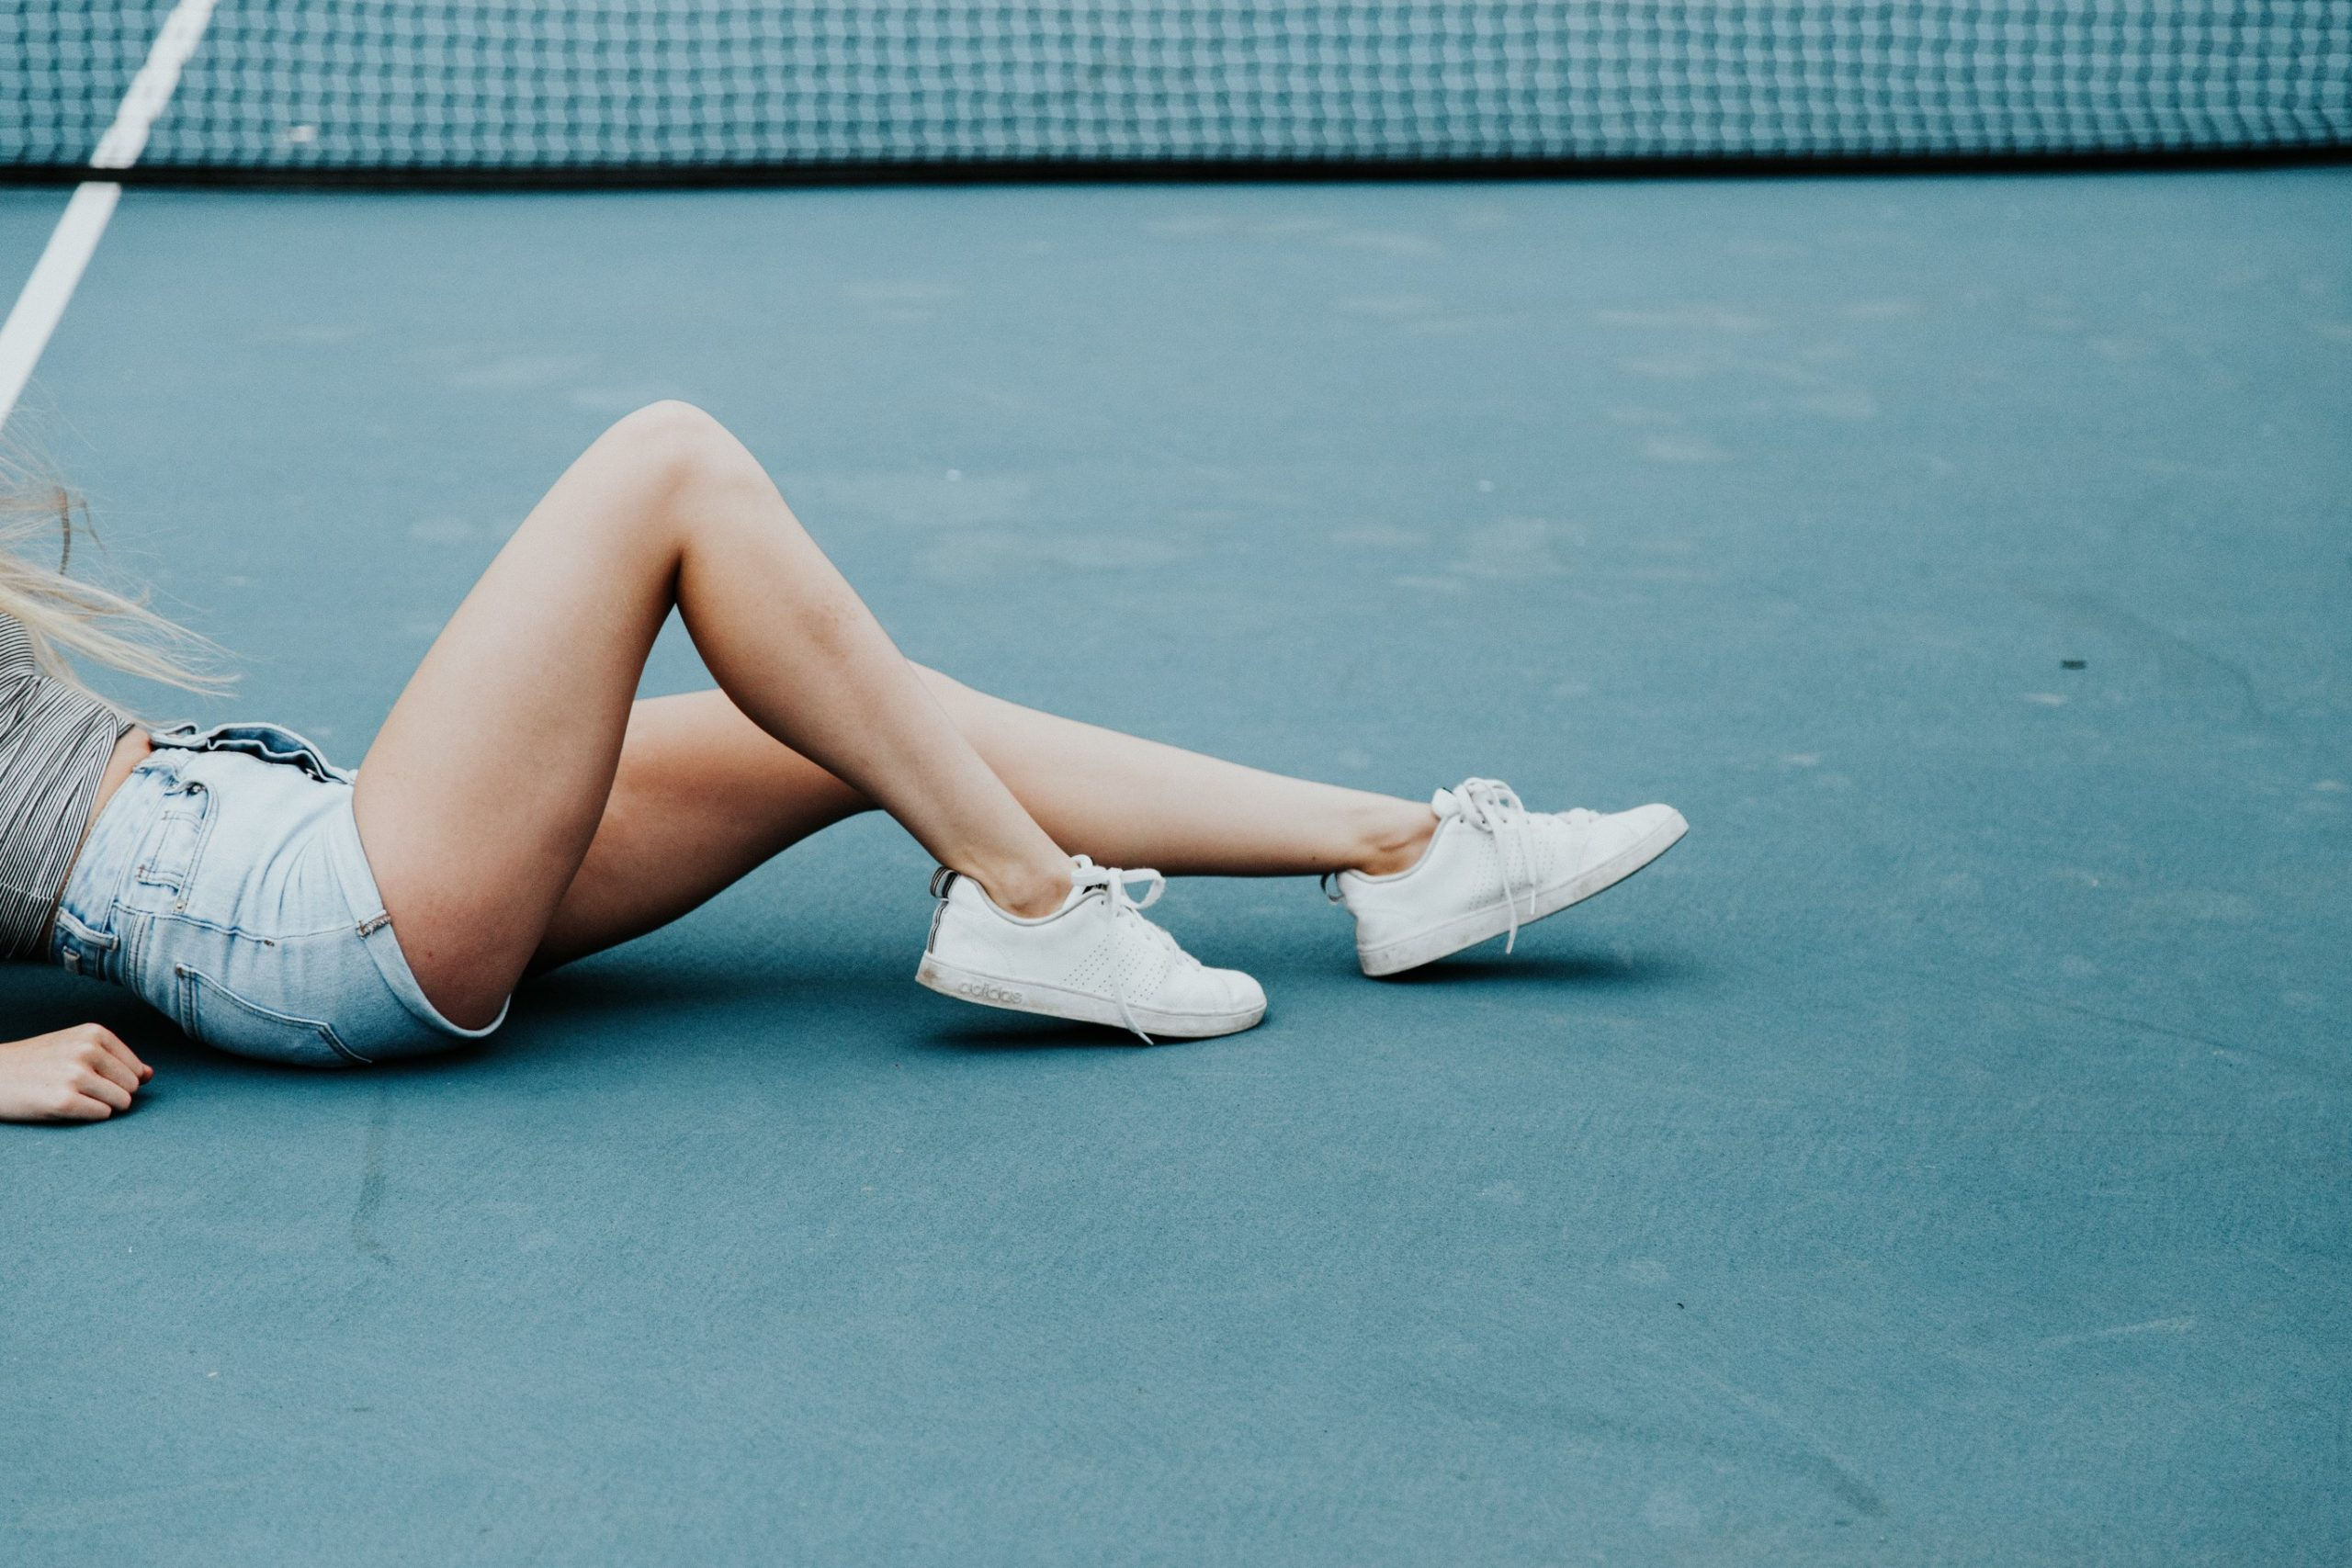 ARE YOU HAVING YOUR VARICOSE VEINS TREATED AT A VEIN MILL?